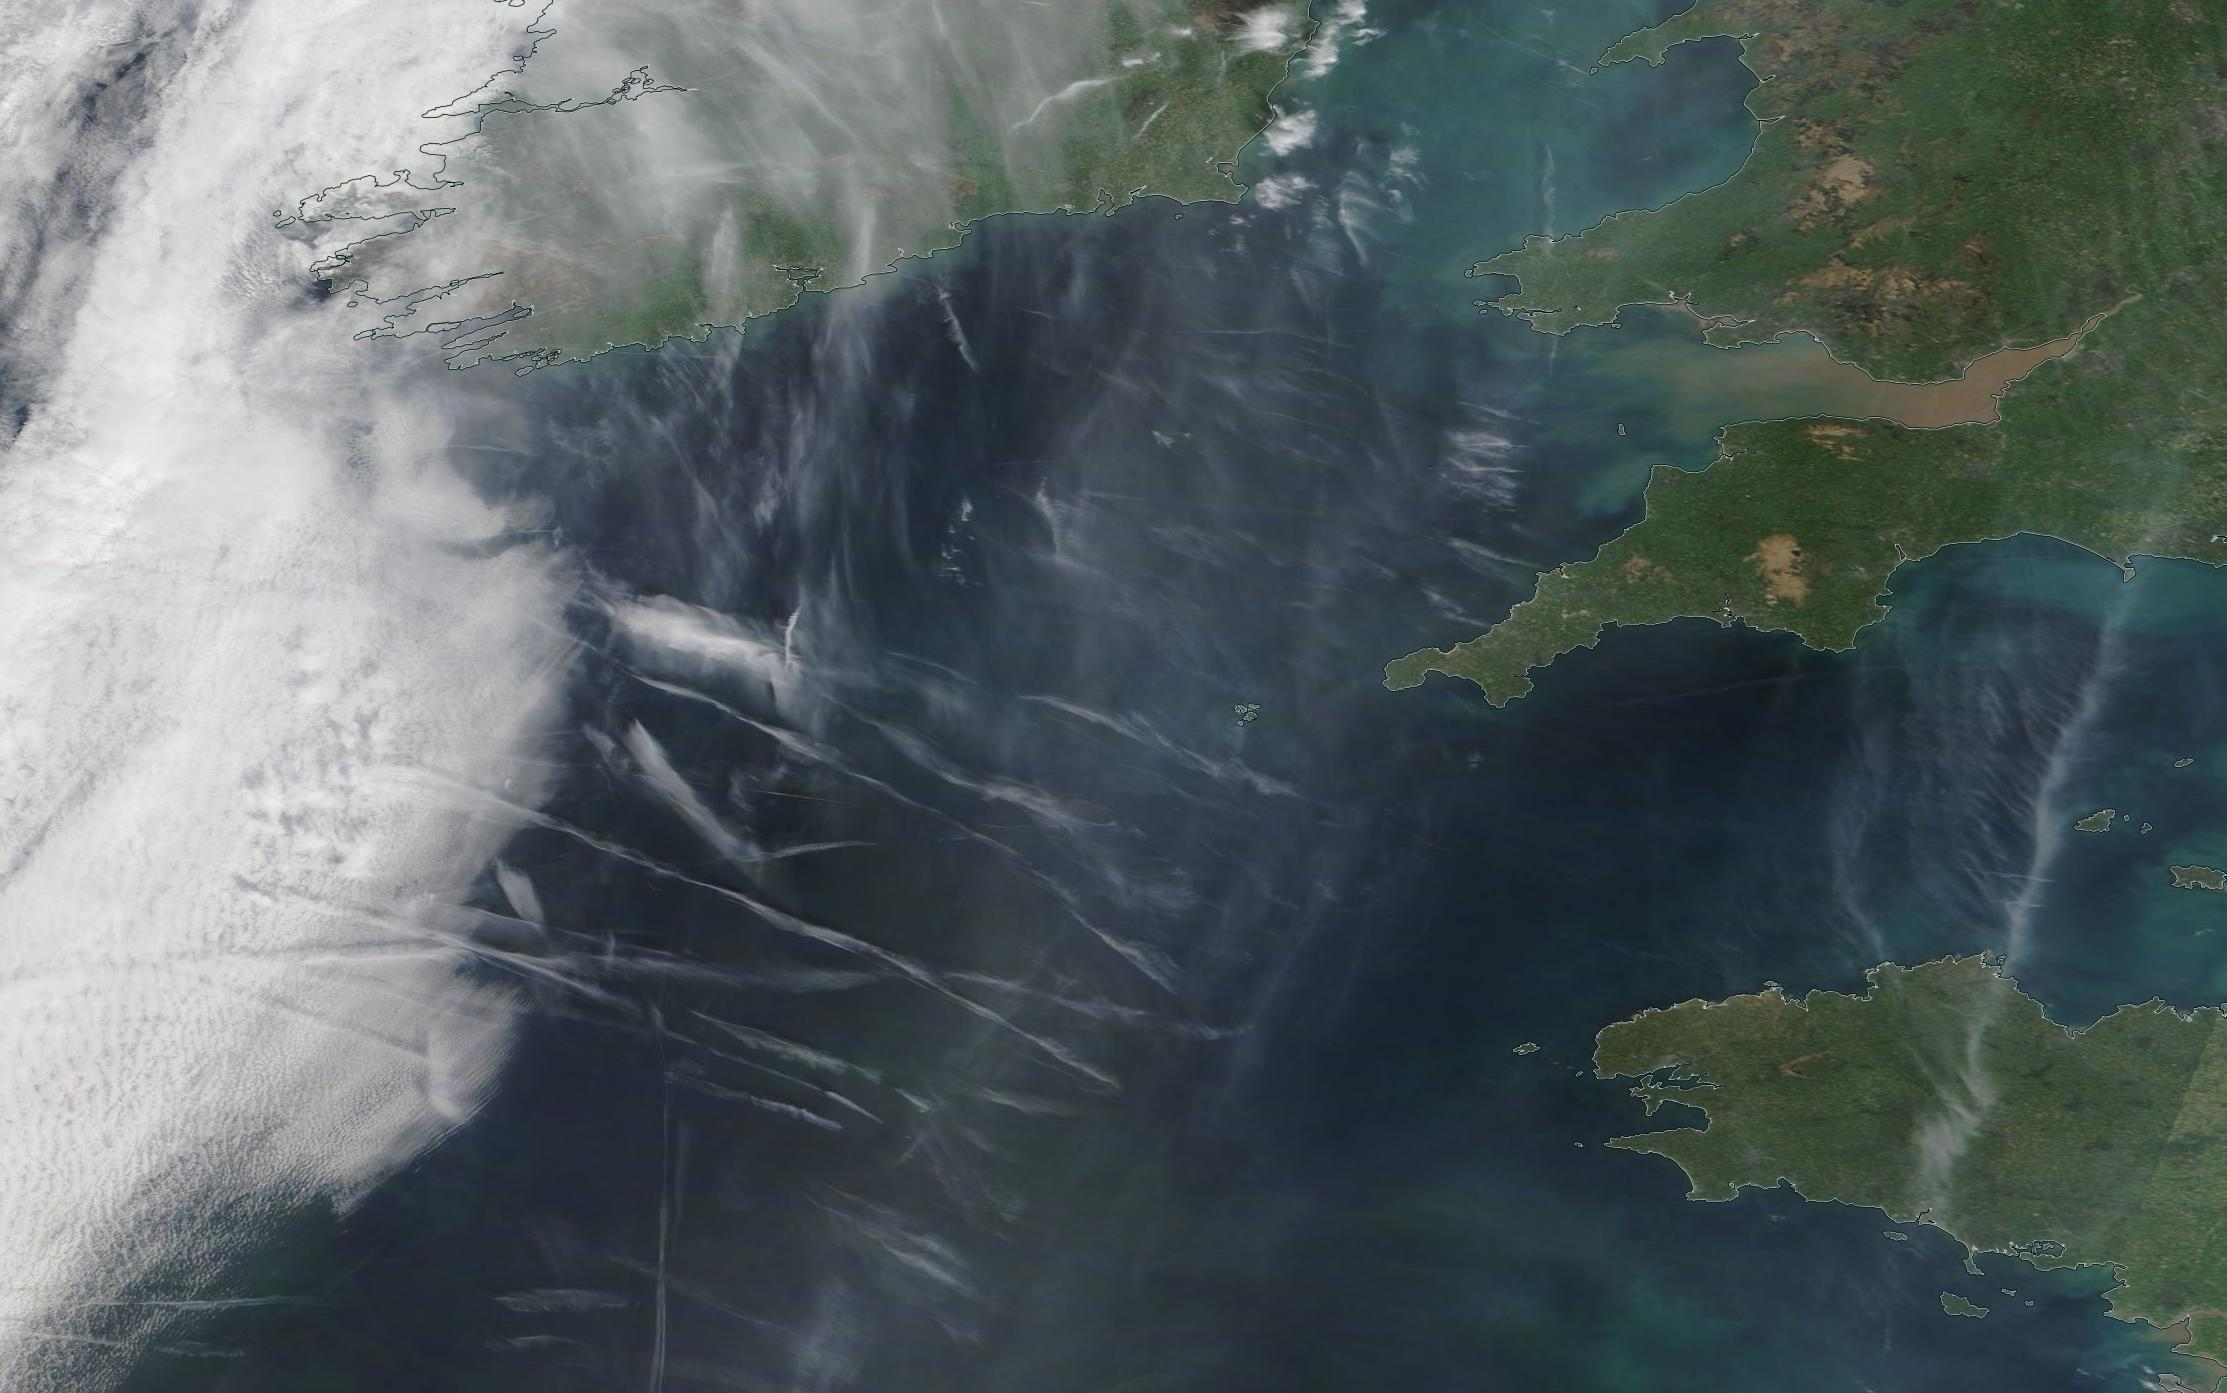 chemtrail geoengineering southern Ireland Easter Saturday 20th April 2019 ... https://go.nasa.gov/2UMICUR